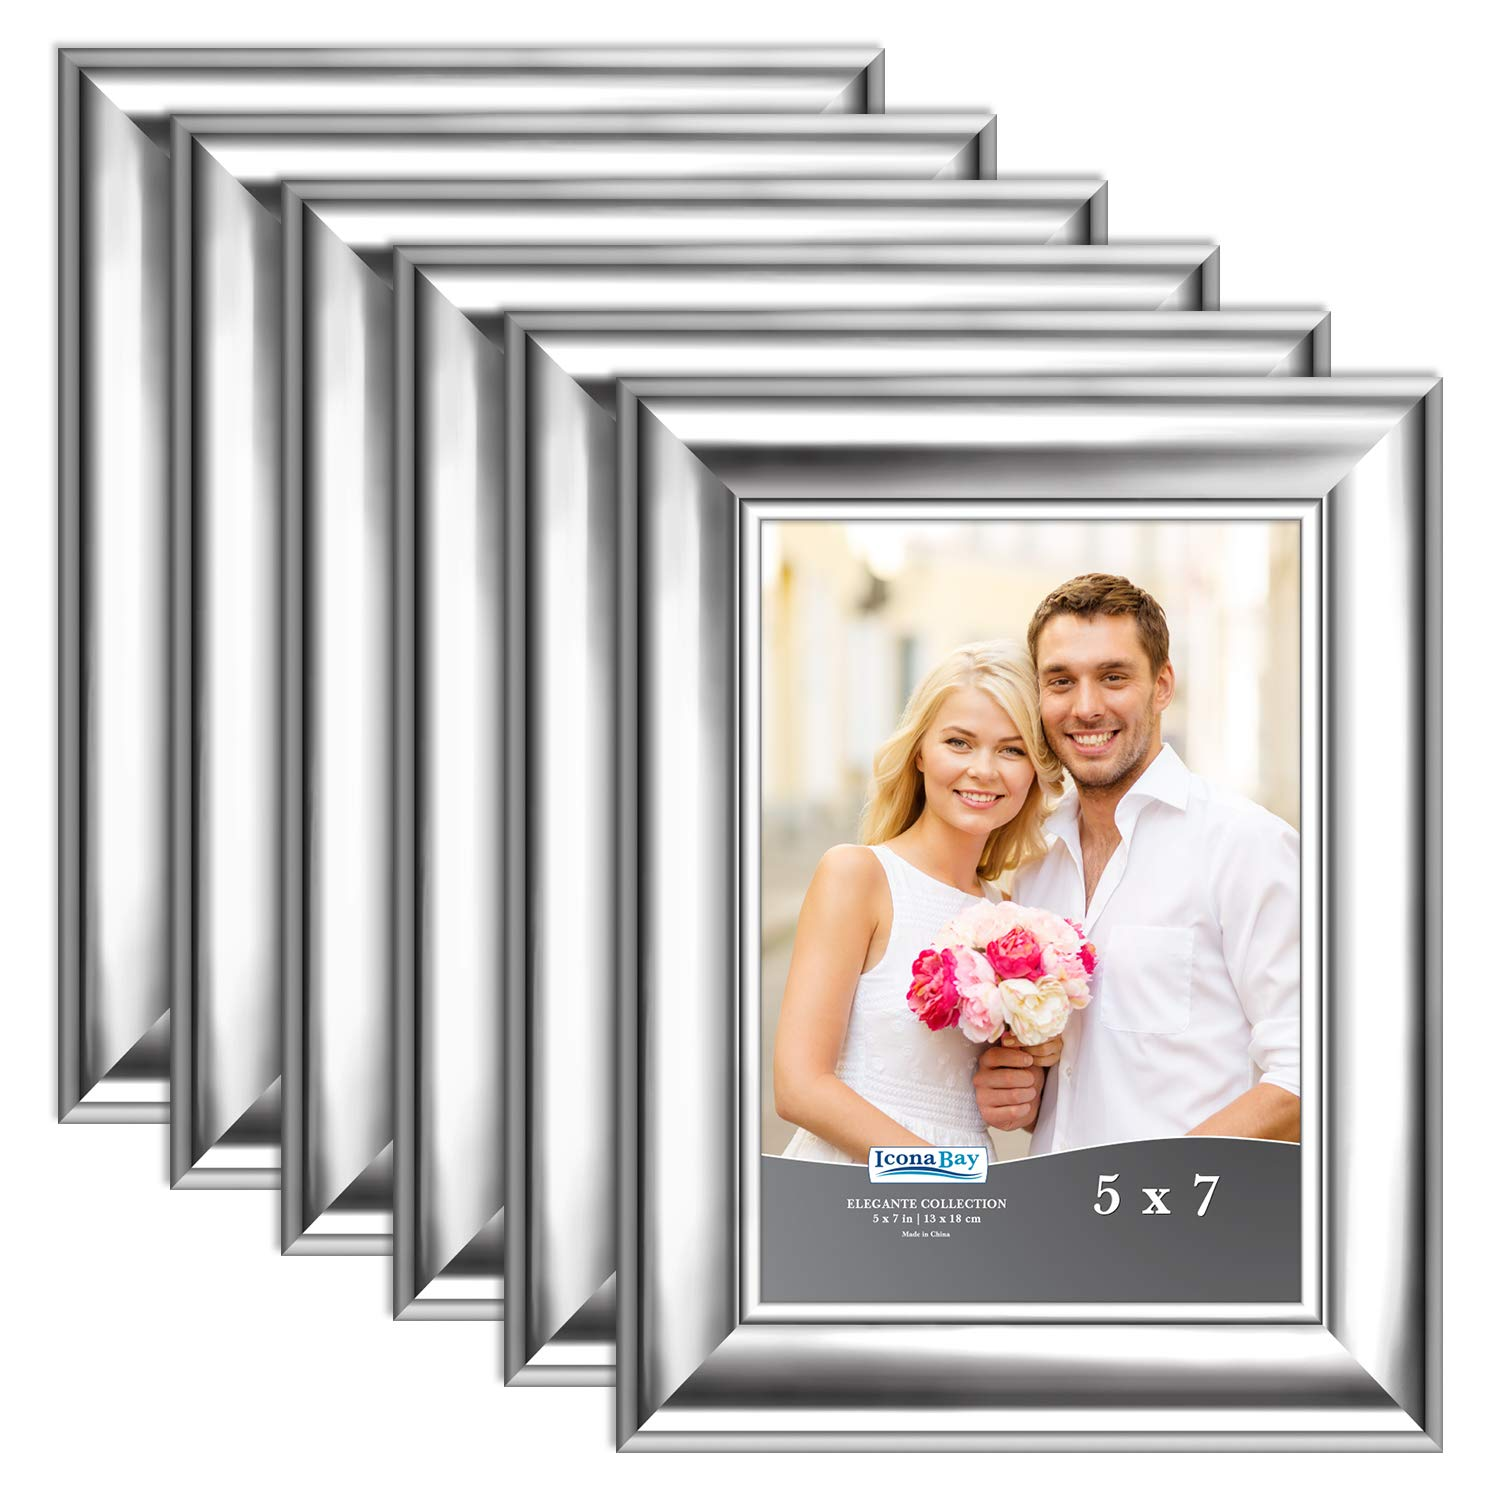 Icona Bay 5x7 Picture Frame (6 Pack, Silver), Silver Photo Frame 5 x 7, Wall Mount or Table Top, Set of 6 Elegante Collection by Icona Bay